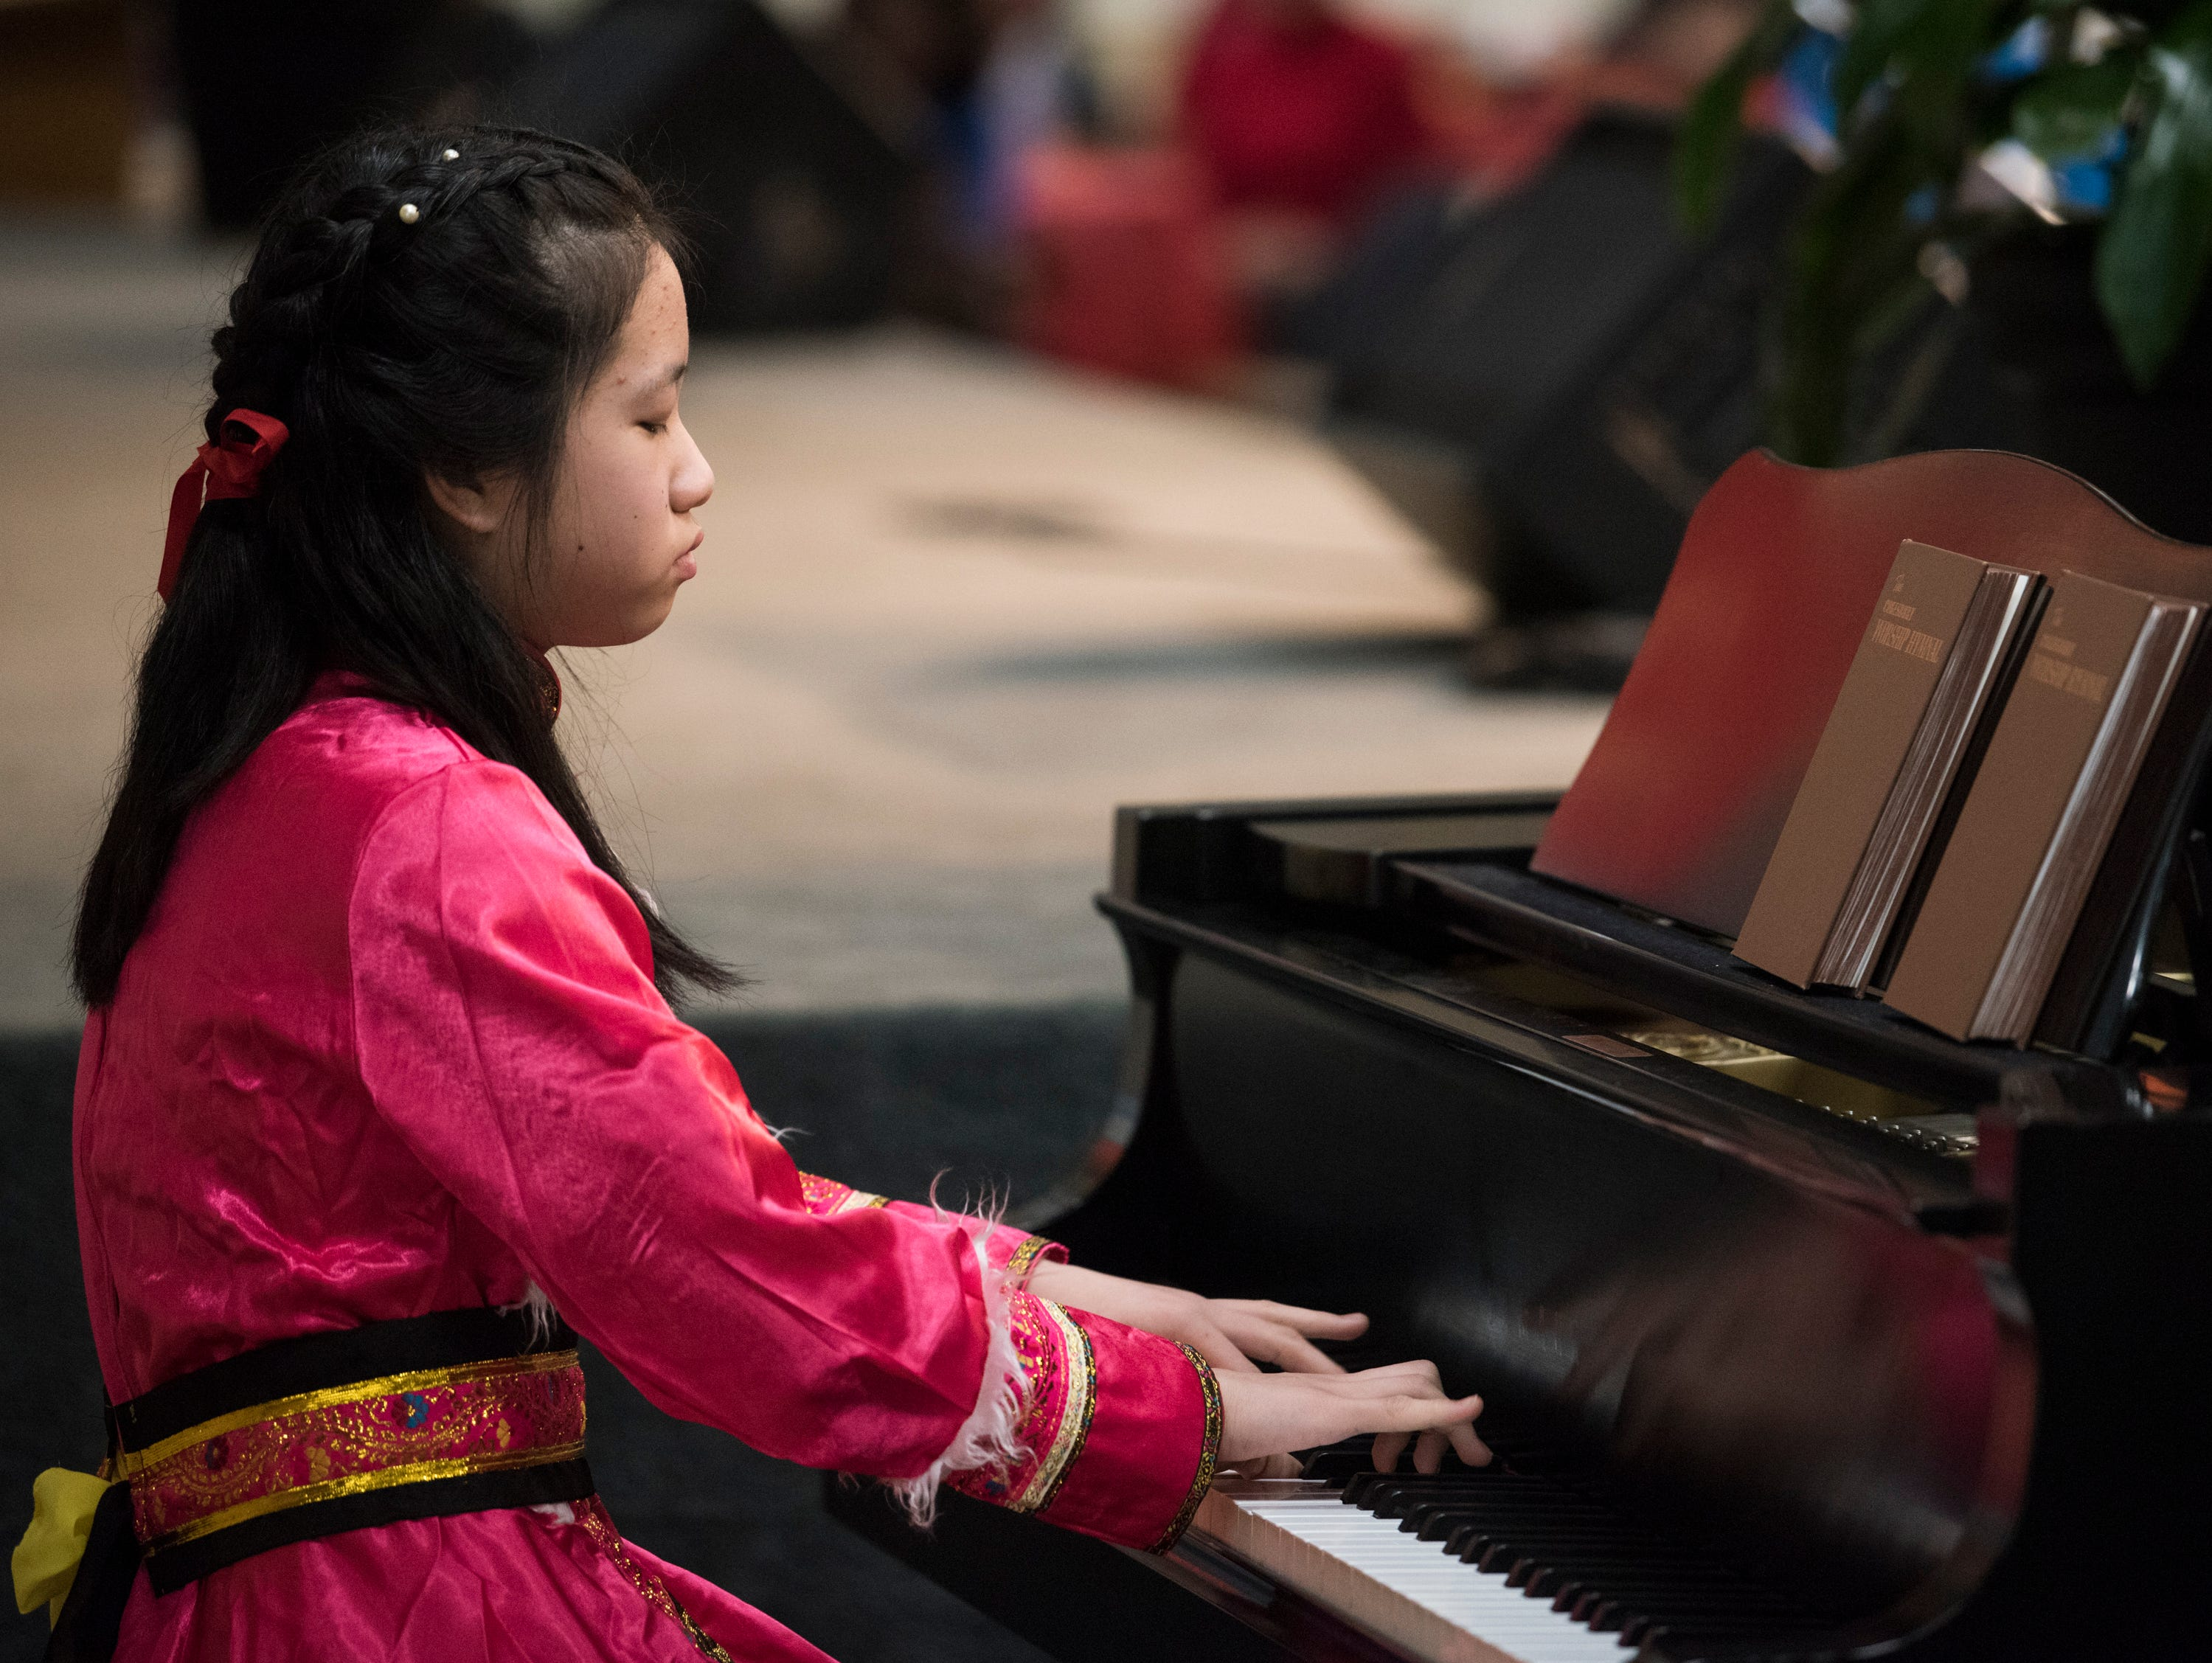 Reena Chen performs during the Central Alabama Association of Chinese 2019 Montgomery Chinese New Year festsival at Frazer Church in Montgomery, Ala., on Saturday, Feb. 9, 2019.